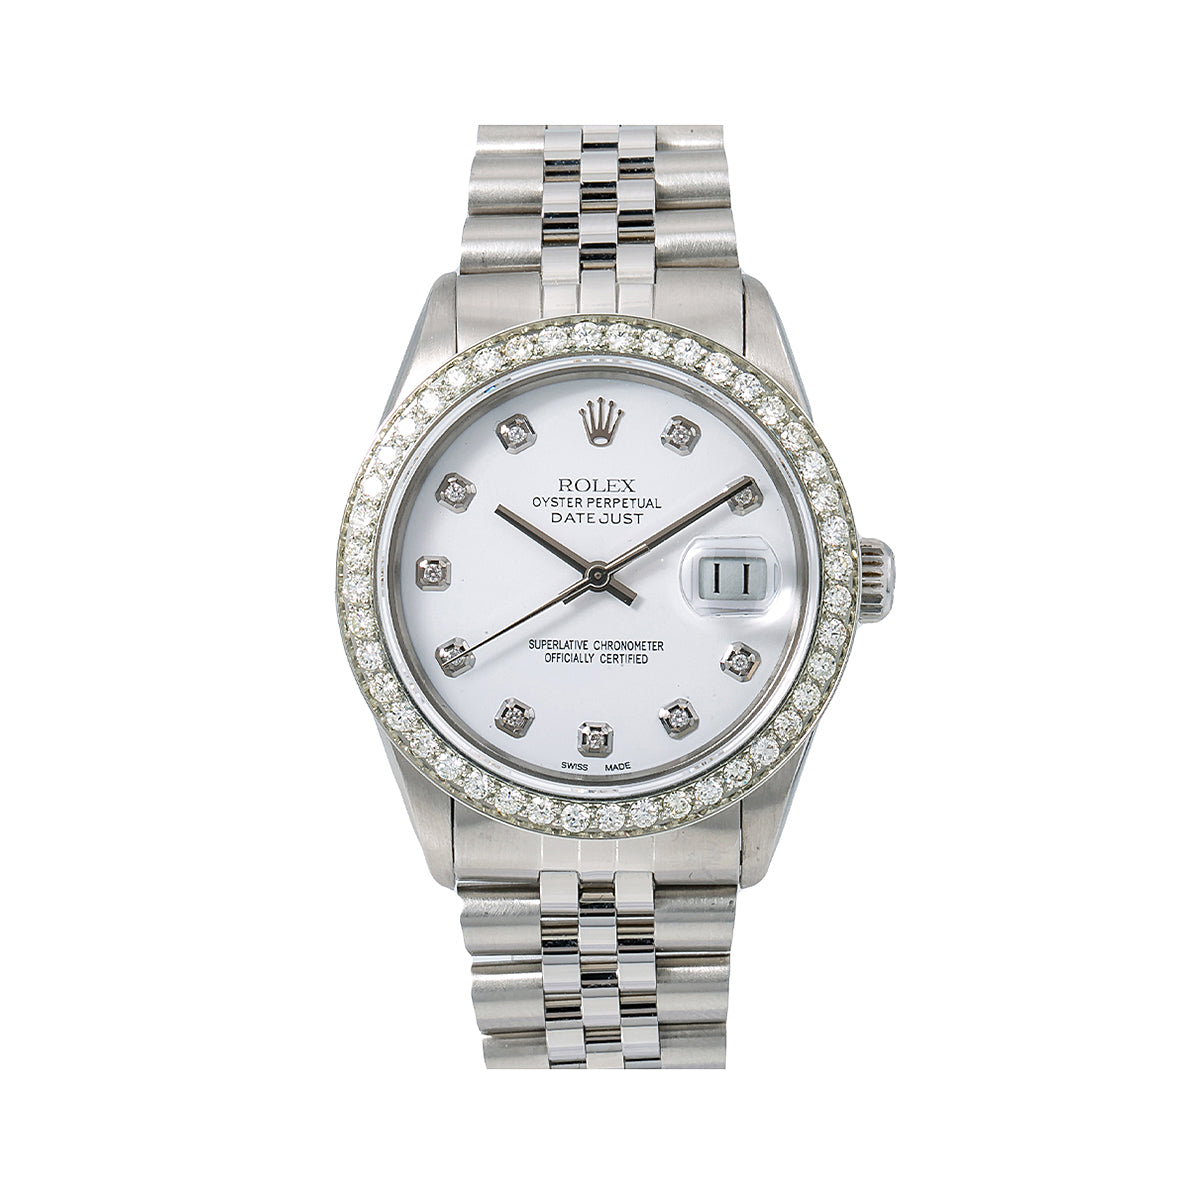 Rolex Datejust Diamond Watch, 16000 36mm, White Diamond Dial With 1.40 CT Diamonds